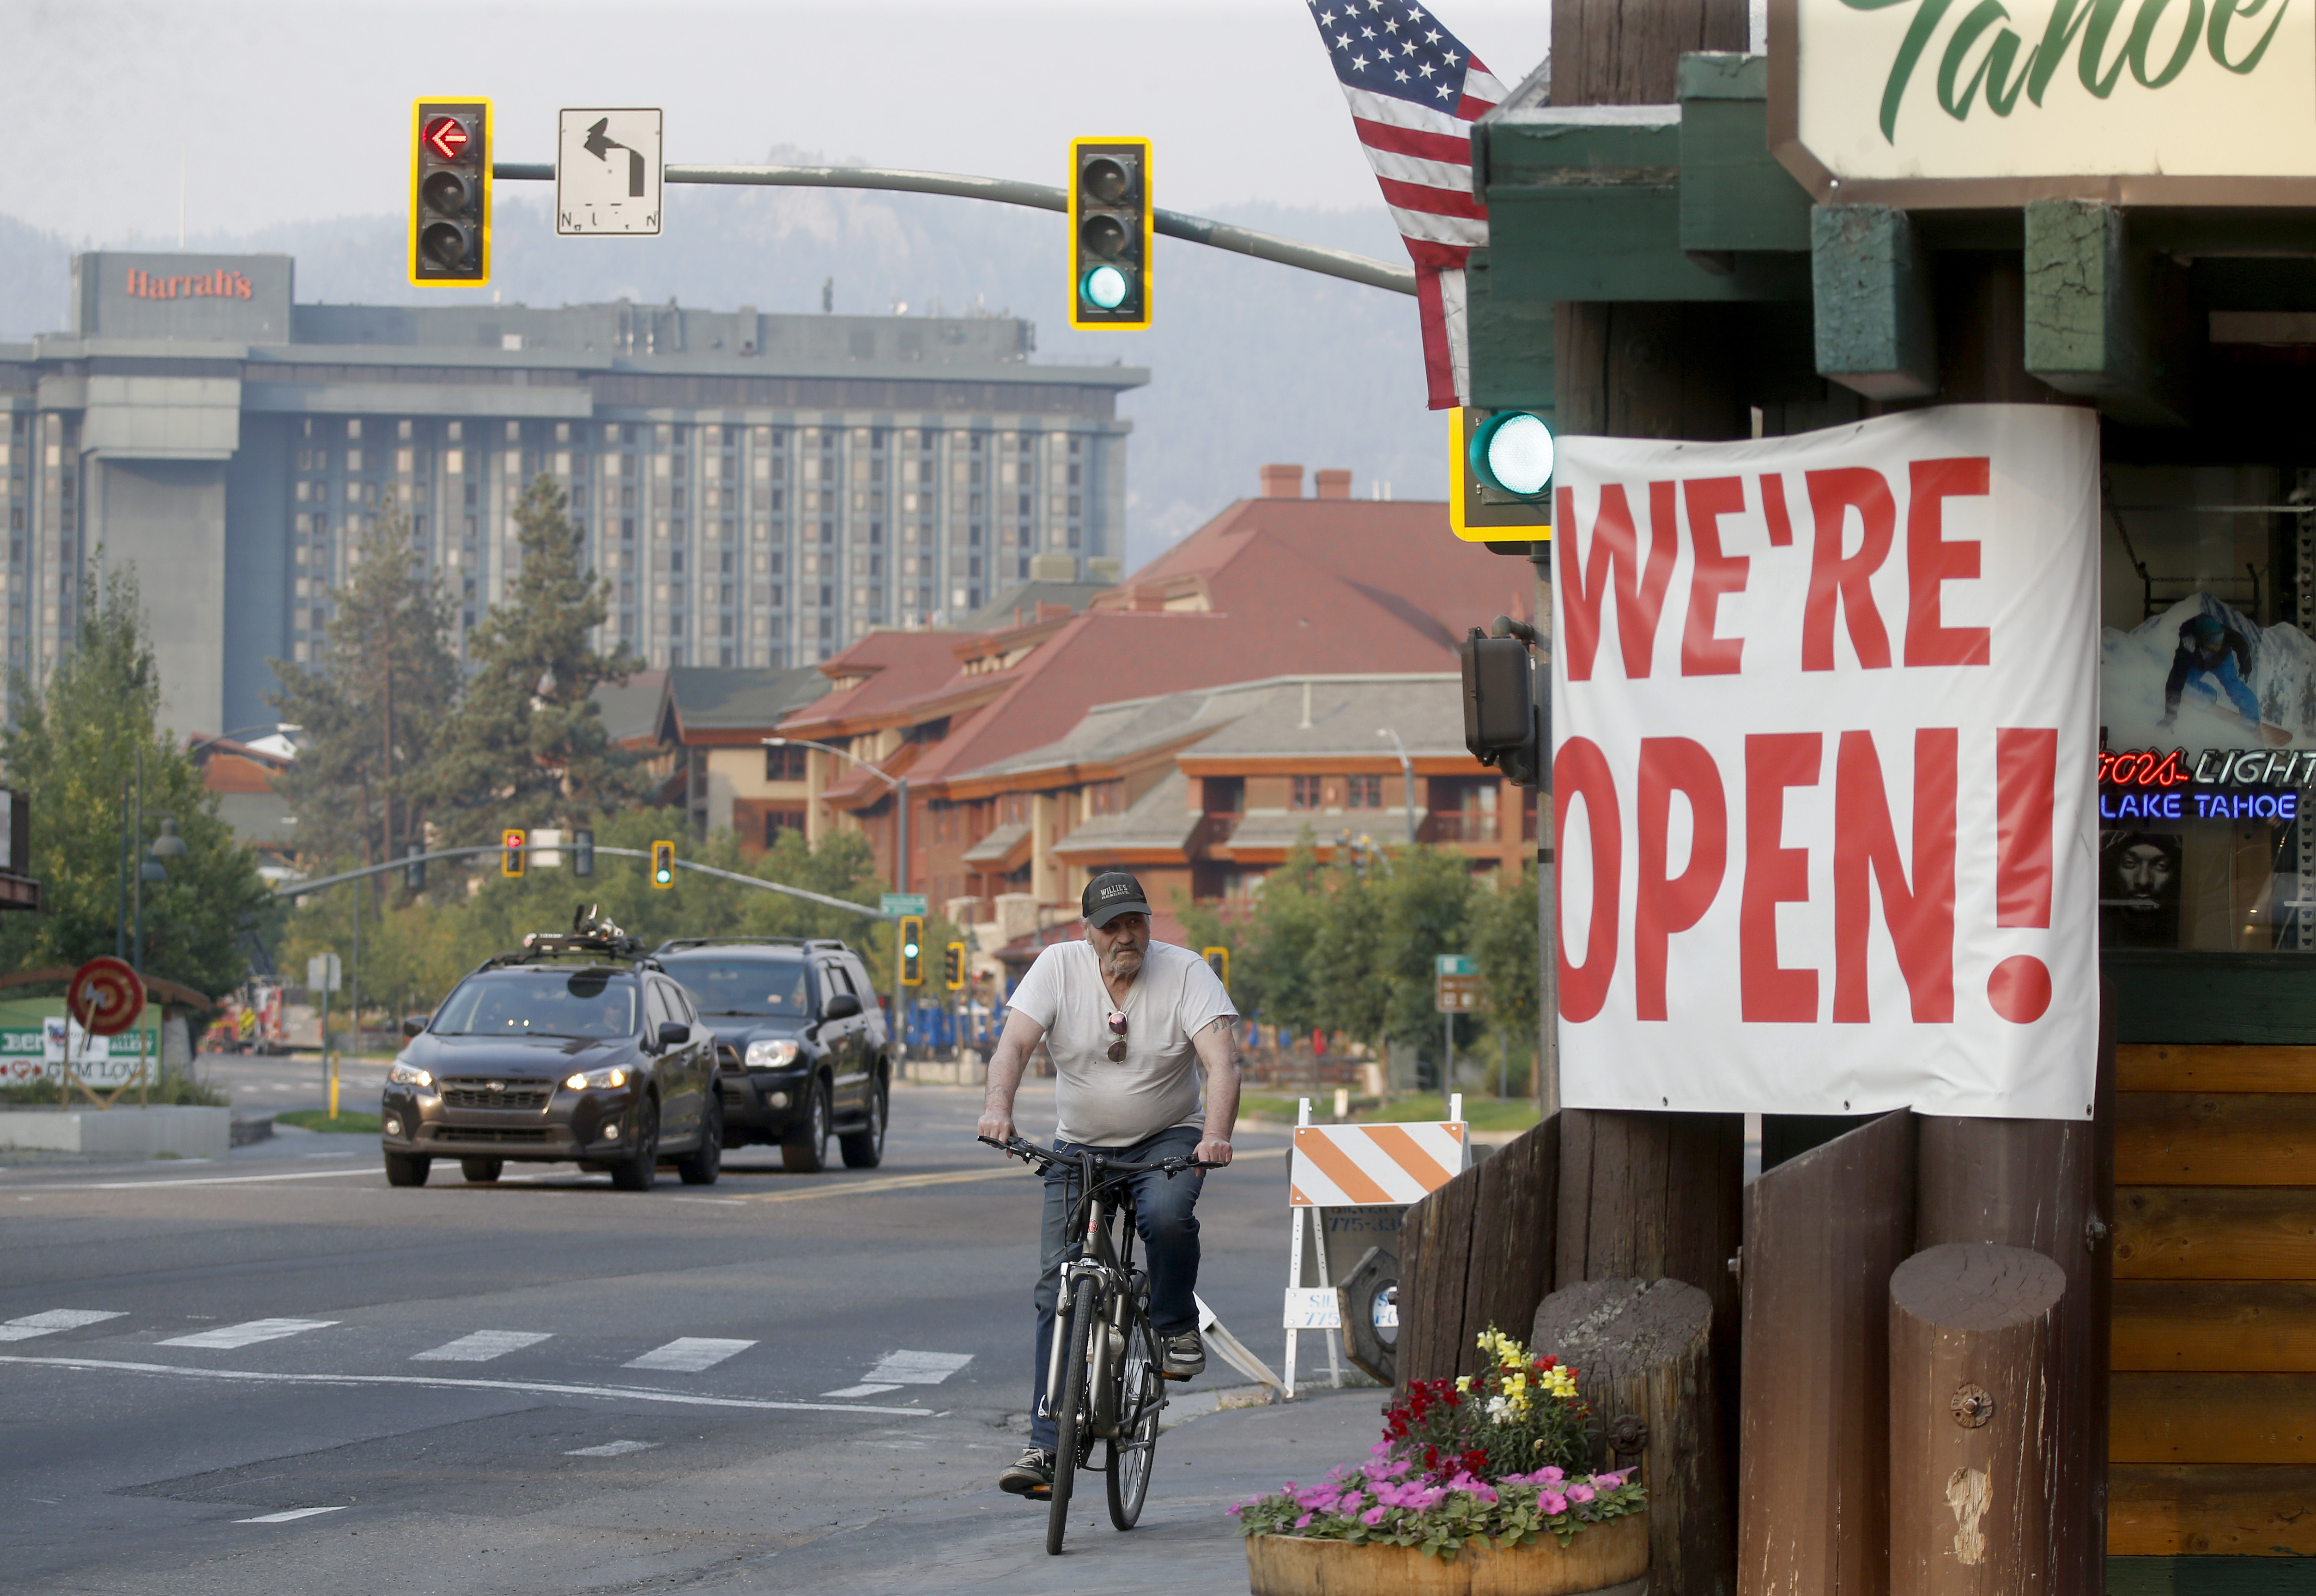 Traffic flows along Highway 50 near Stateline, Nevada as residents begin to return to South Lake Tahoe, Calif., on Sunday, Sept. 5, 2021. Cal Fire officials downgraded some evacuation orders near Lake Tahoe and allowed thousands of South Lake Tahoe residents who fled the Caldor Fire last week to return home Sunday.